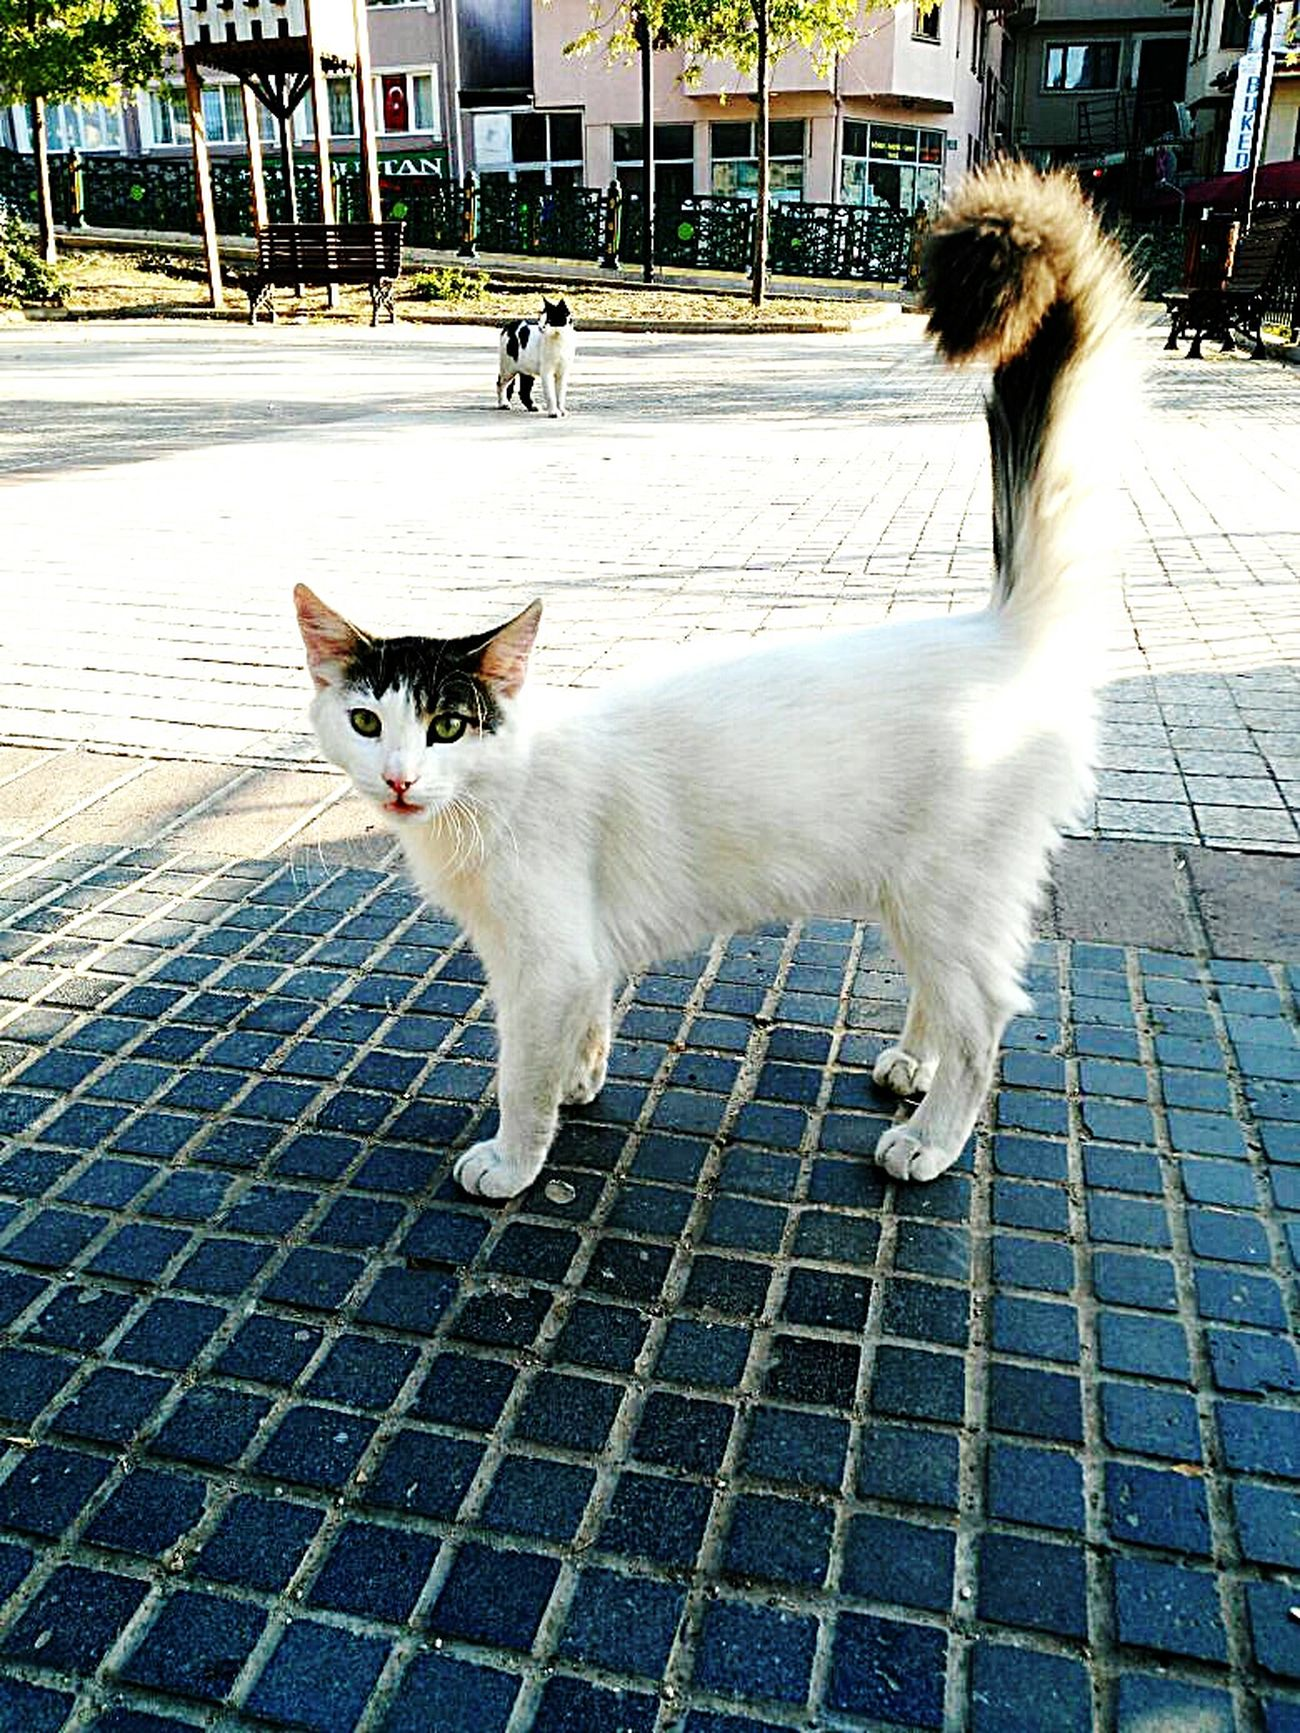 Animal Themes Pets Domestic Animals One Animal Domestic Cat Mammal Cat Street Walking Feline Looking At Camera Alertness Carnivora Day Whisker Outdoors Footpath